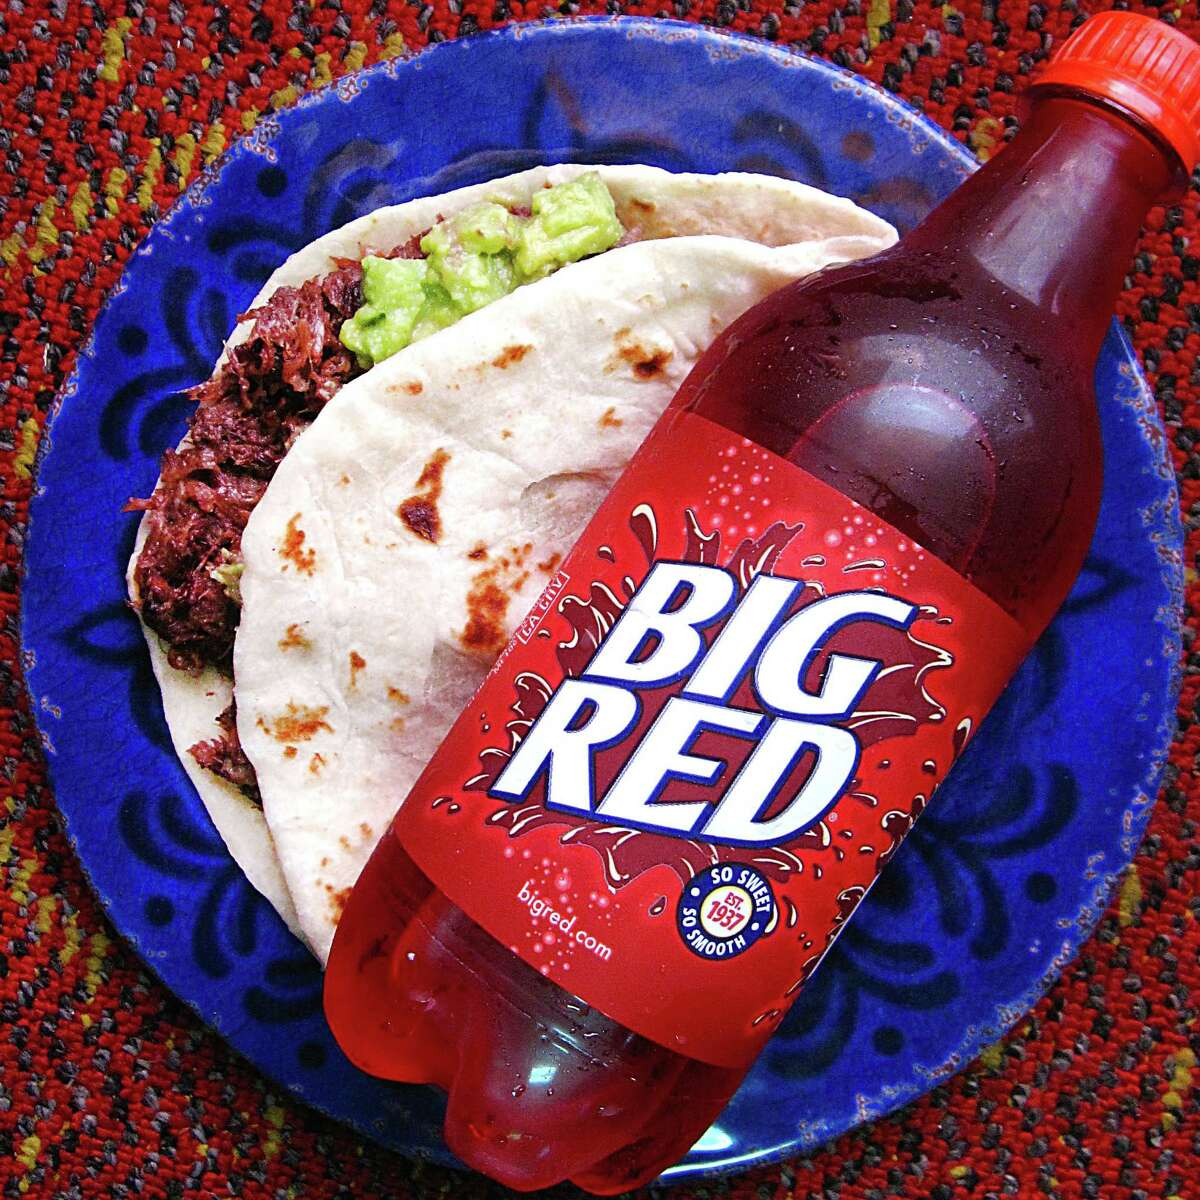 2. And that you don't eat barbacoa without Big Red.